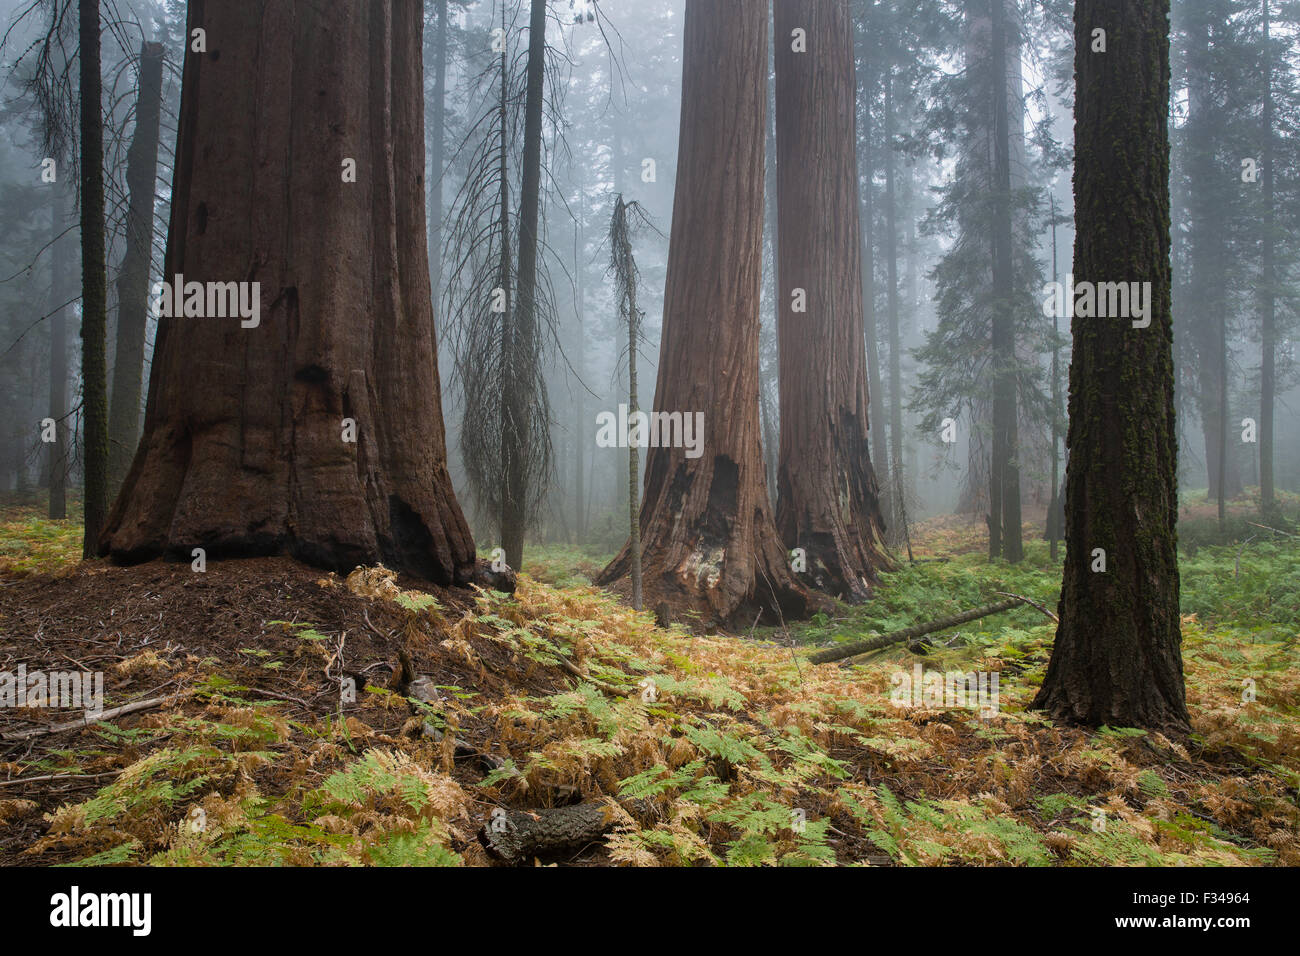 mist amongst the giant sequoia trees on the Bear Hill Trail, Sequoia National Park, California, USA - Stock Image